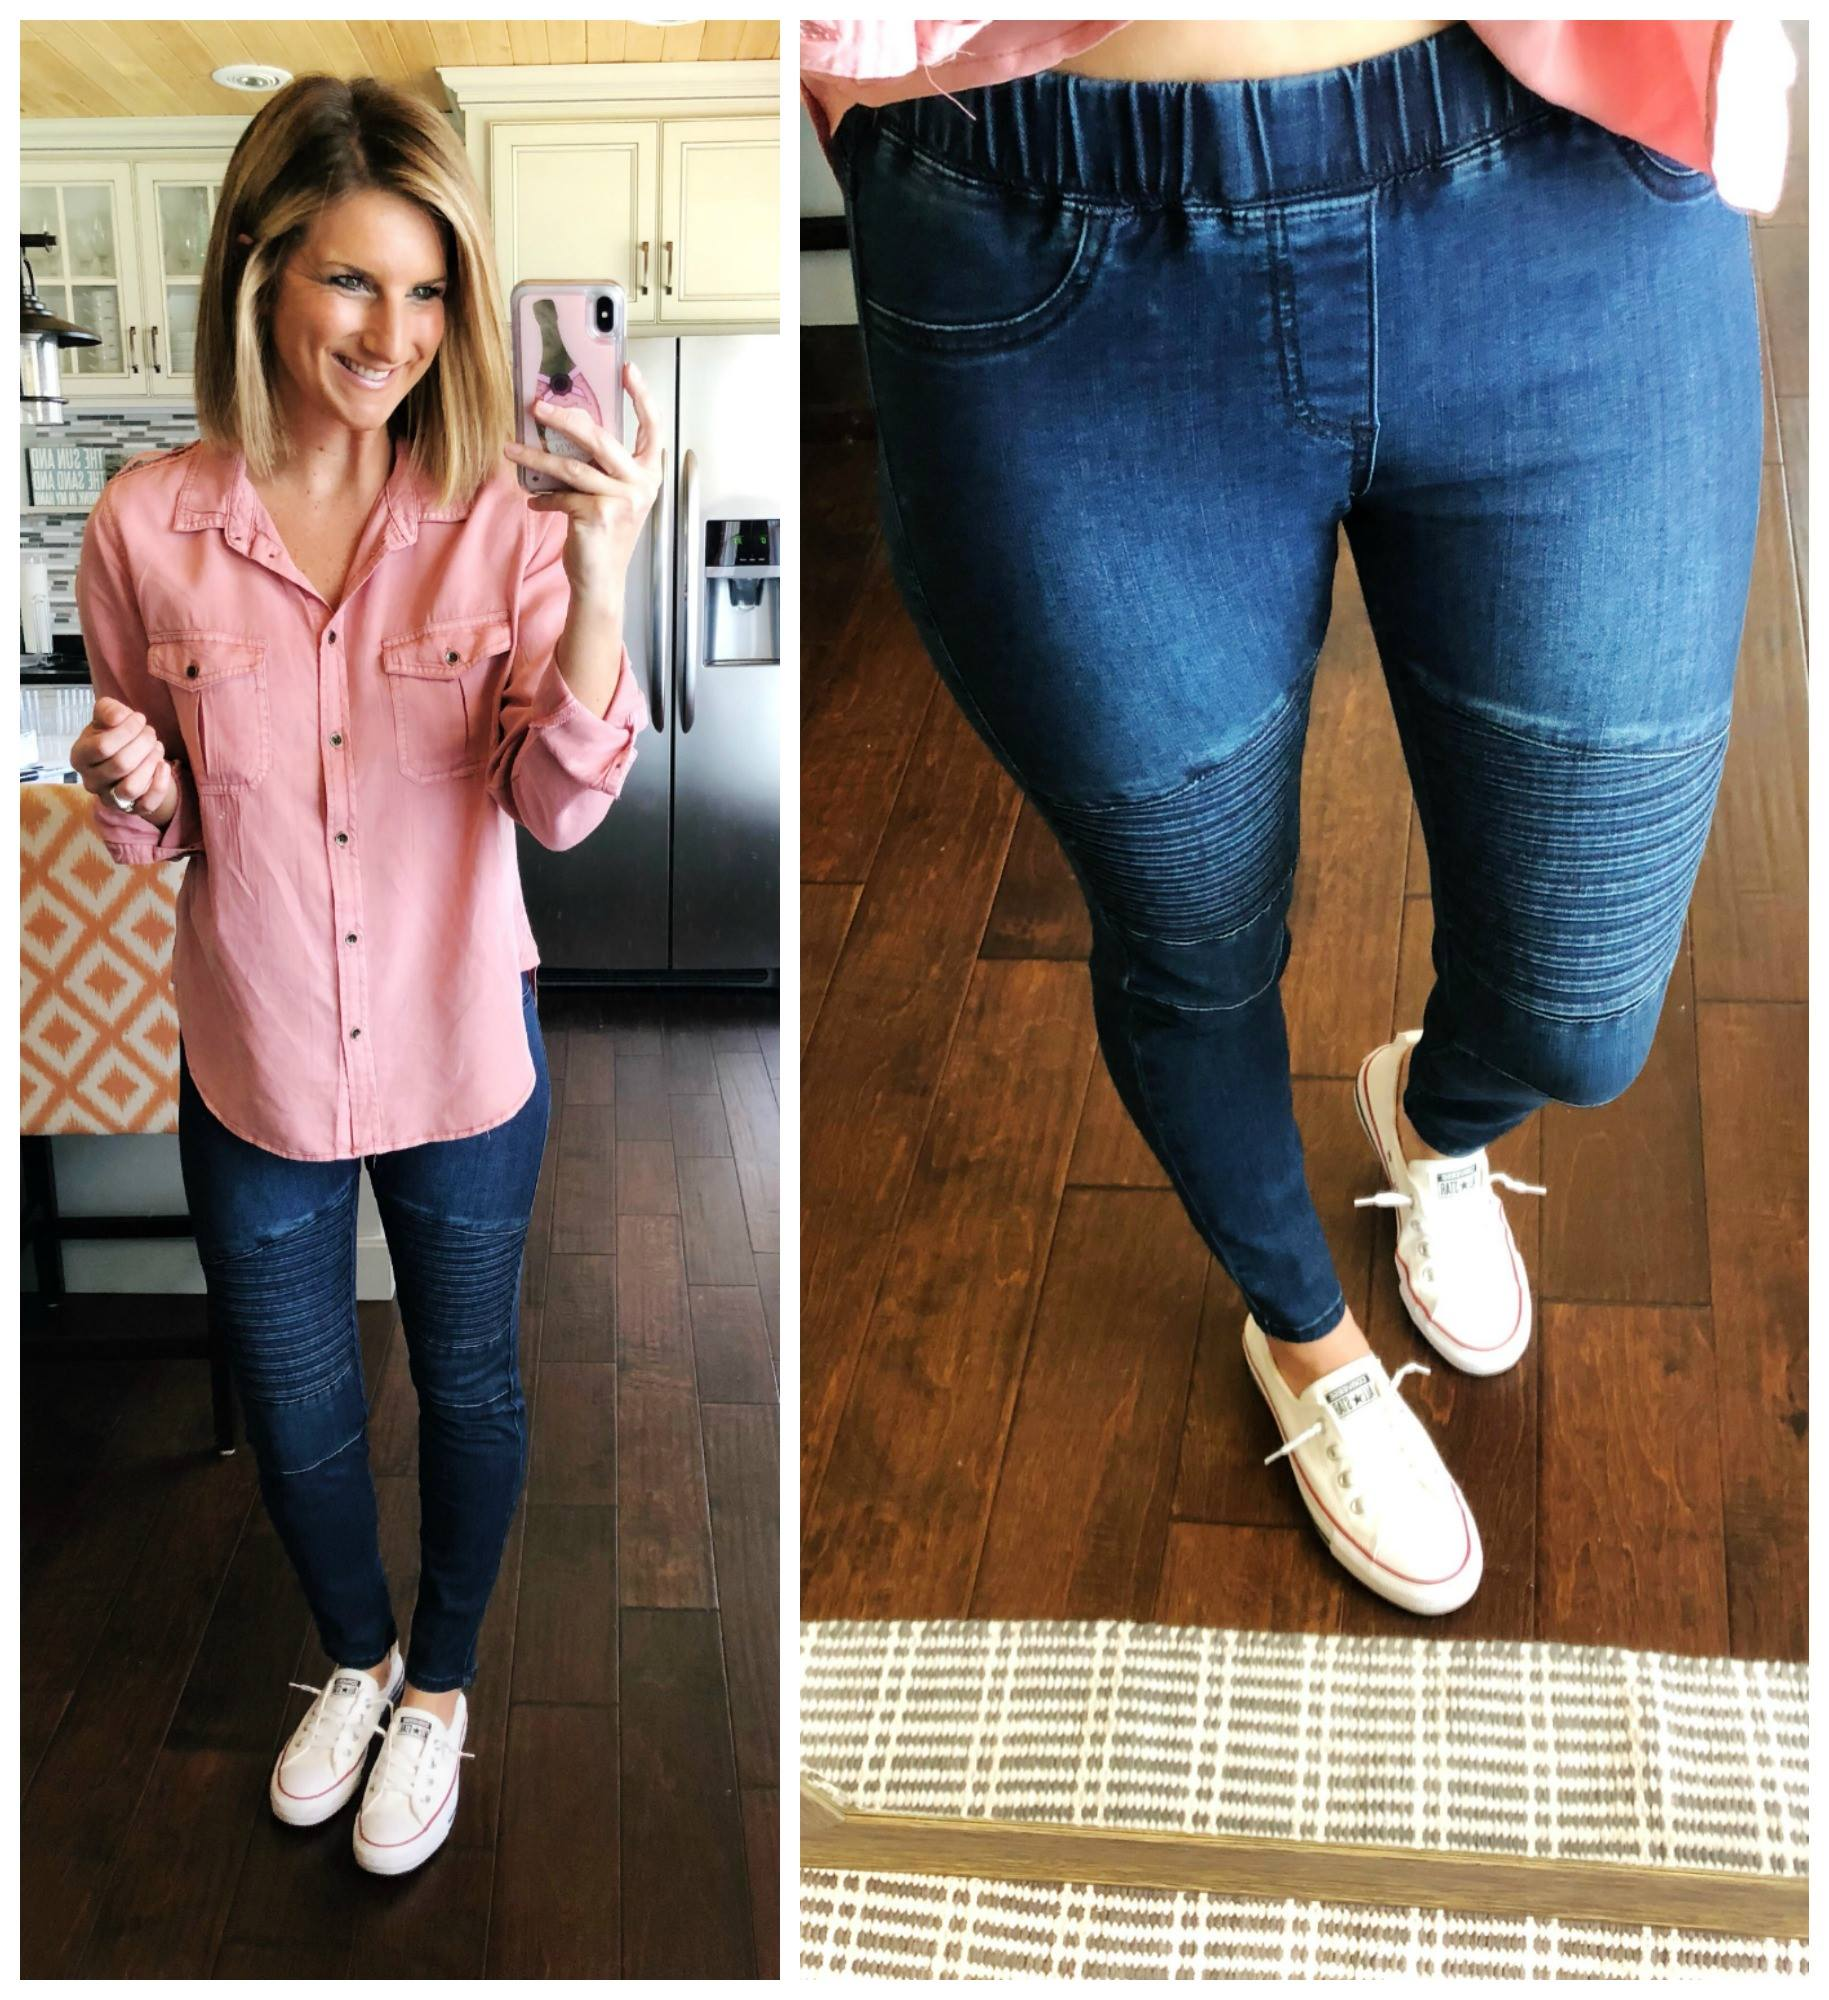 Casual Spring Outfit // Button Up Shirt + Pull On Jeggings + Converse Sneakers